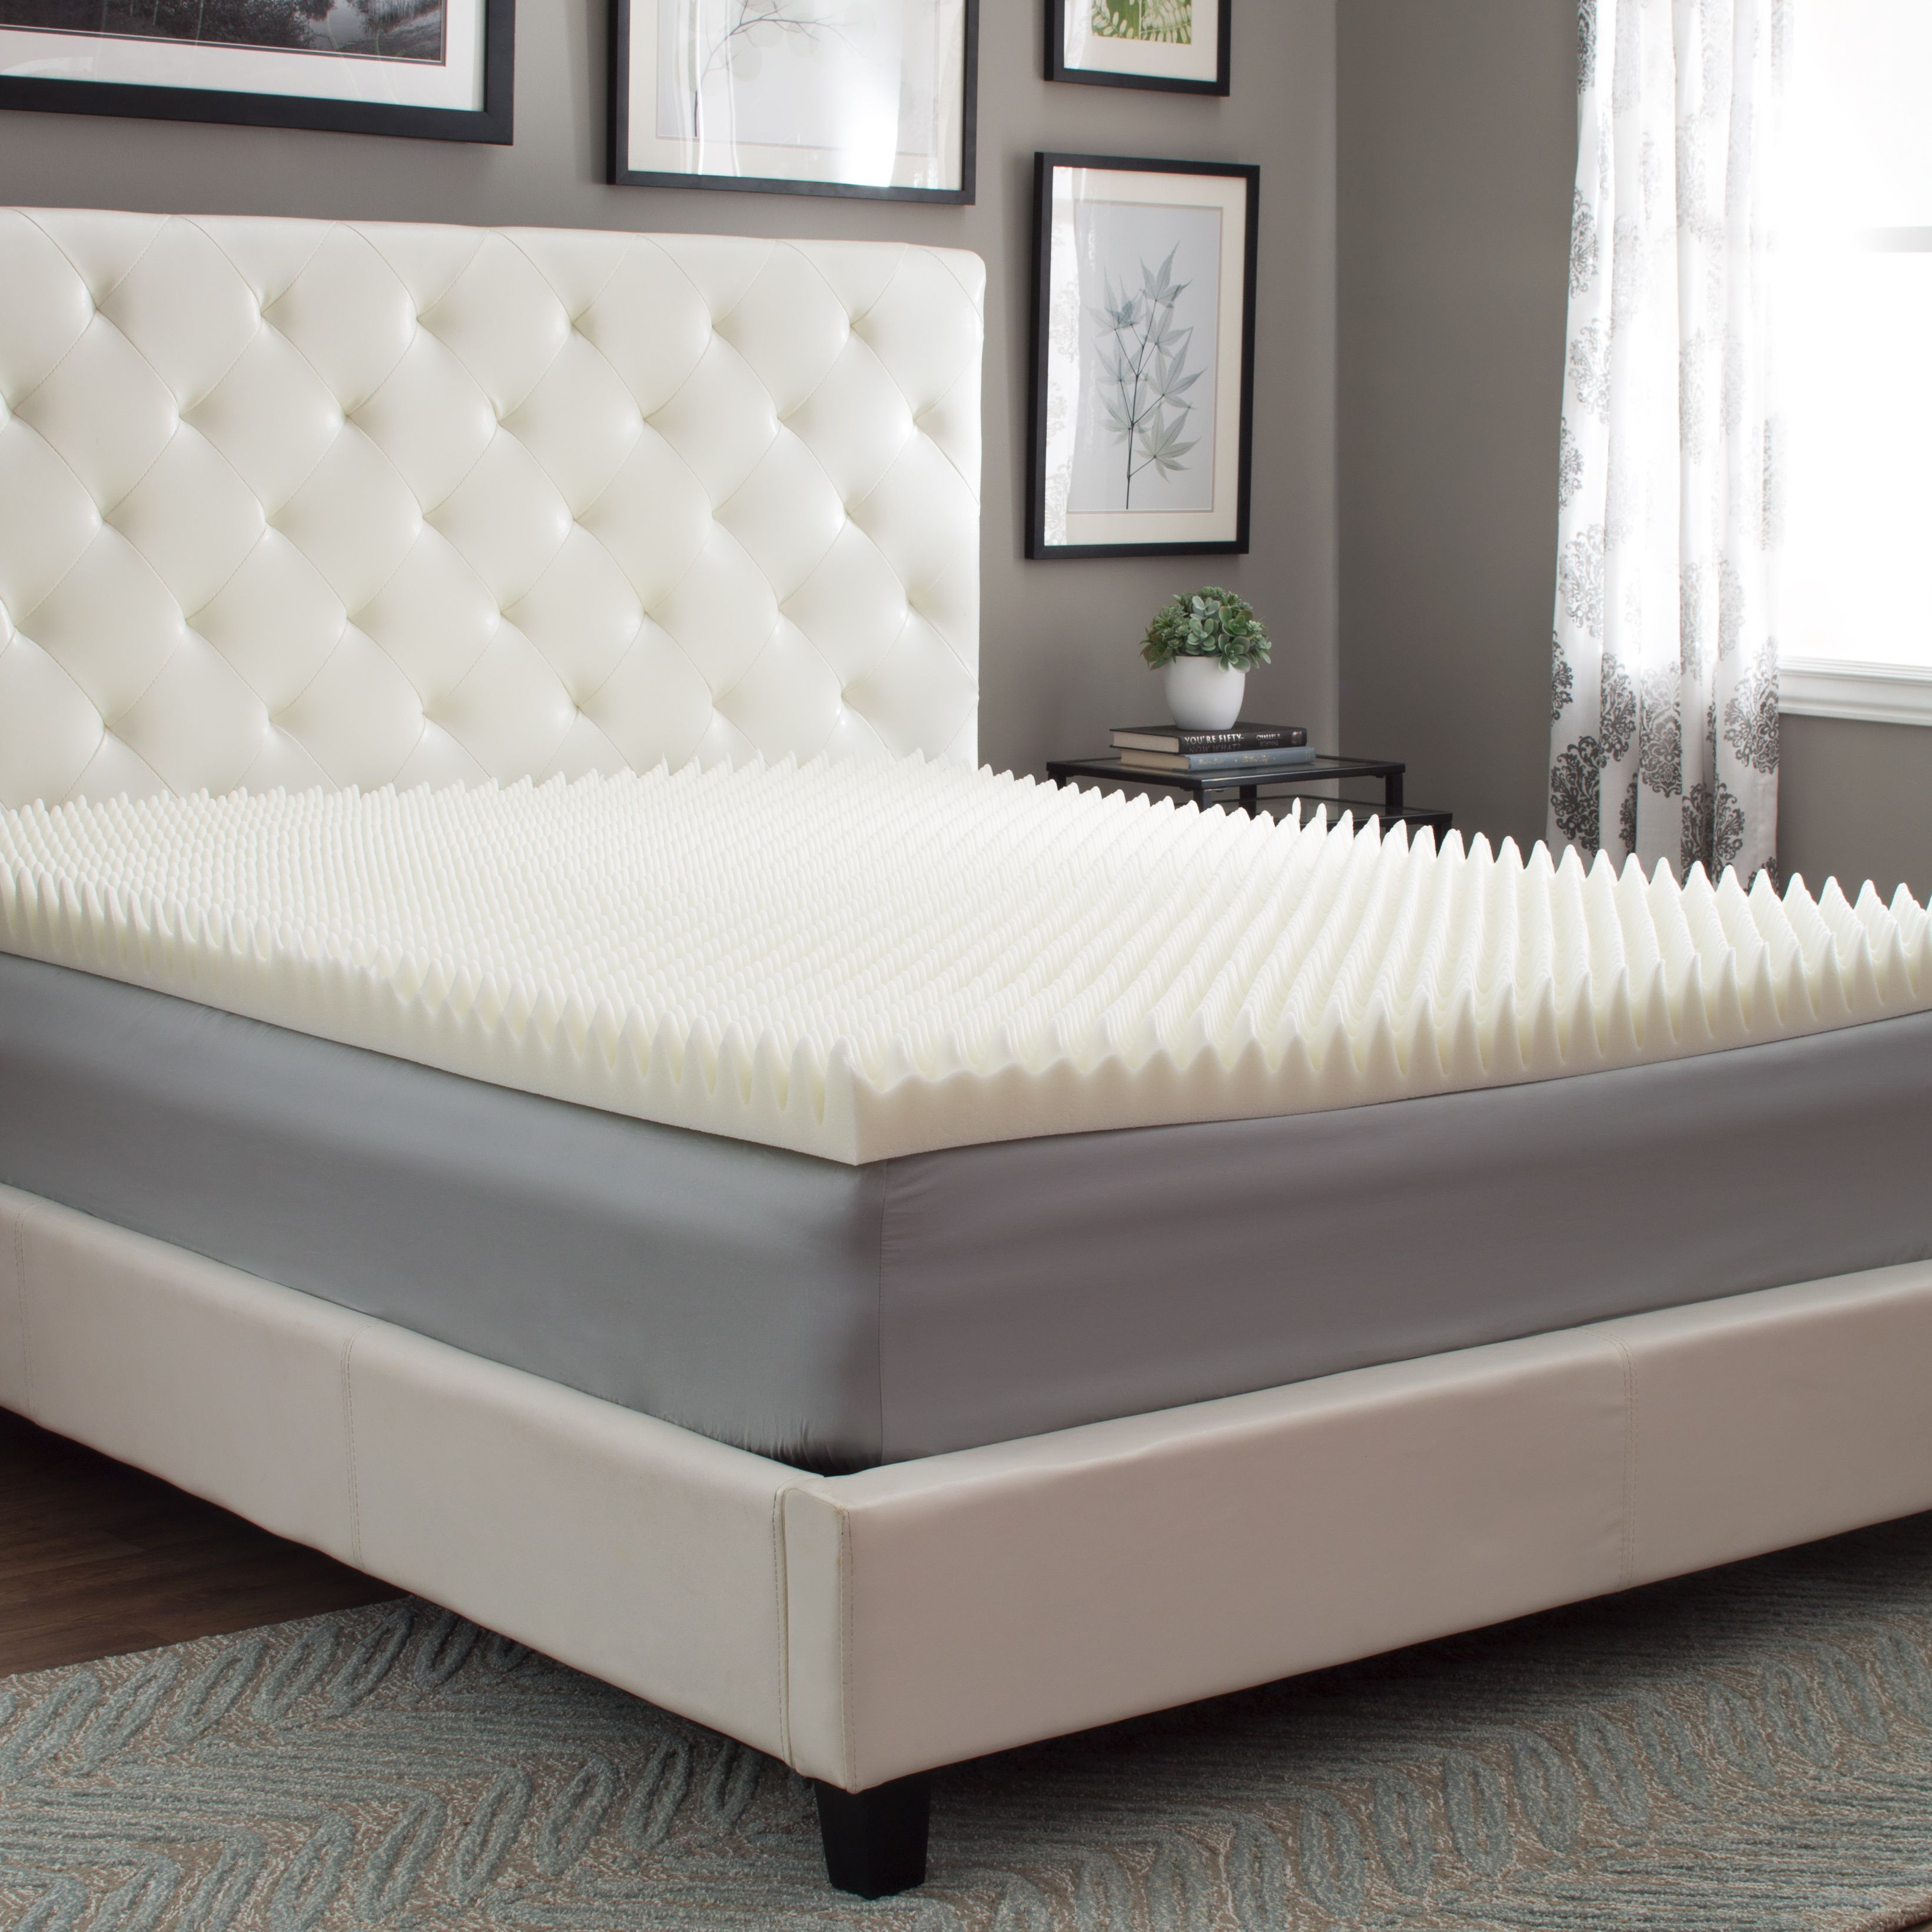 here s a slumber solutions highloft supreme 4 inch memory foam